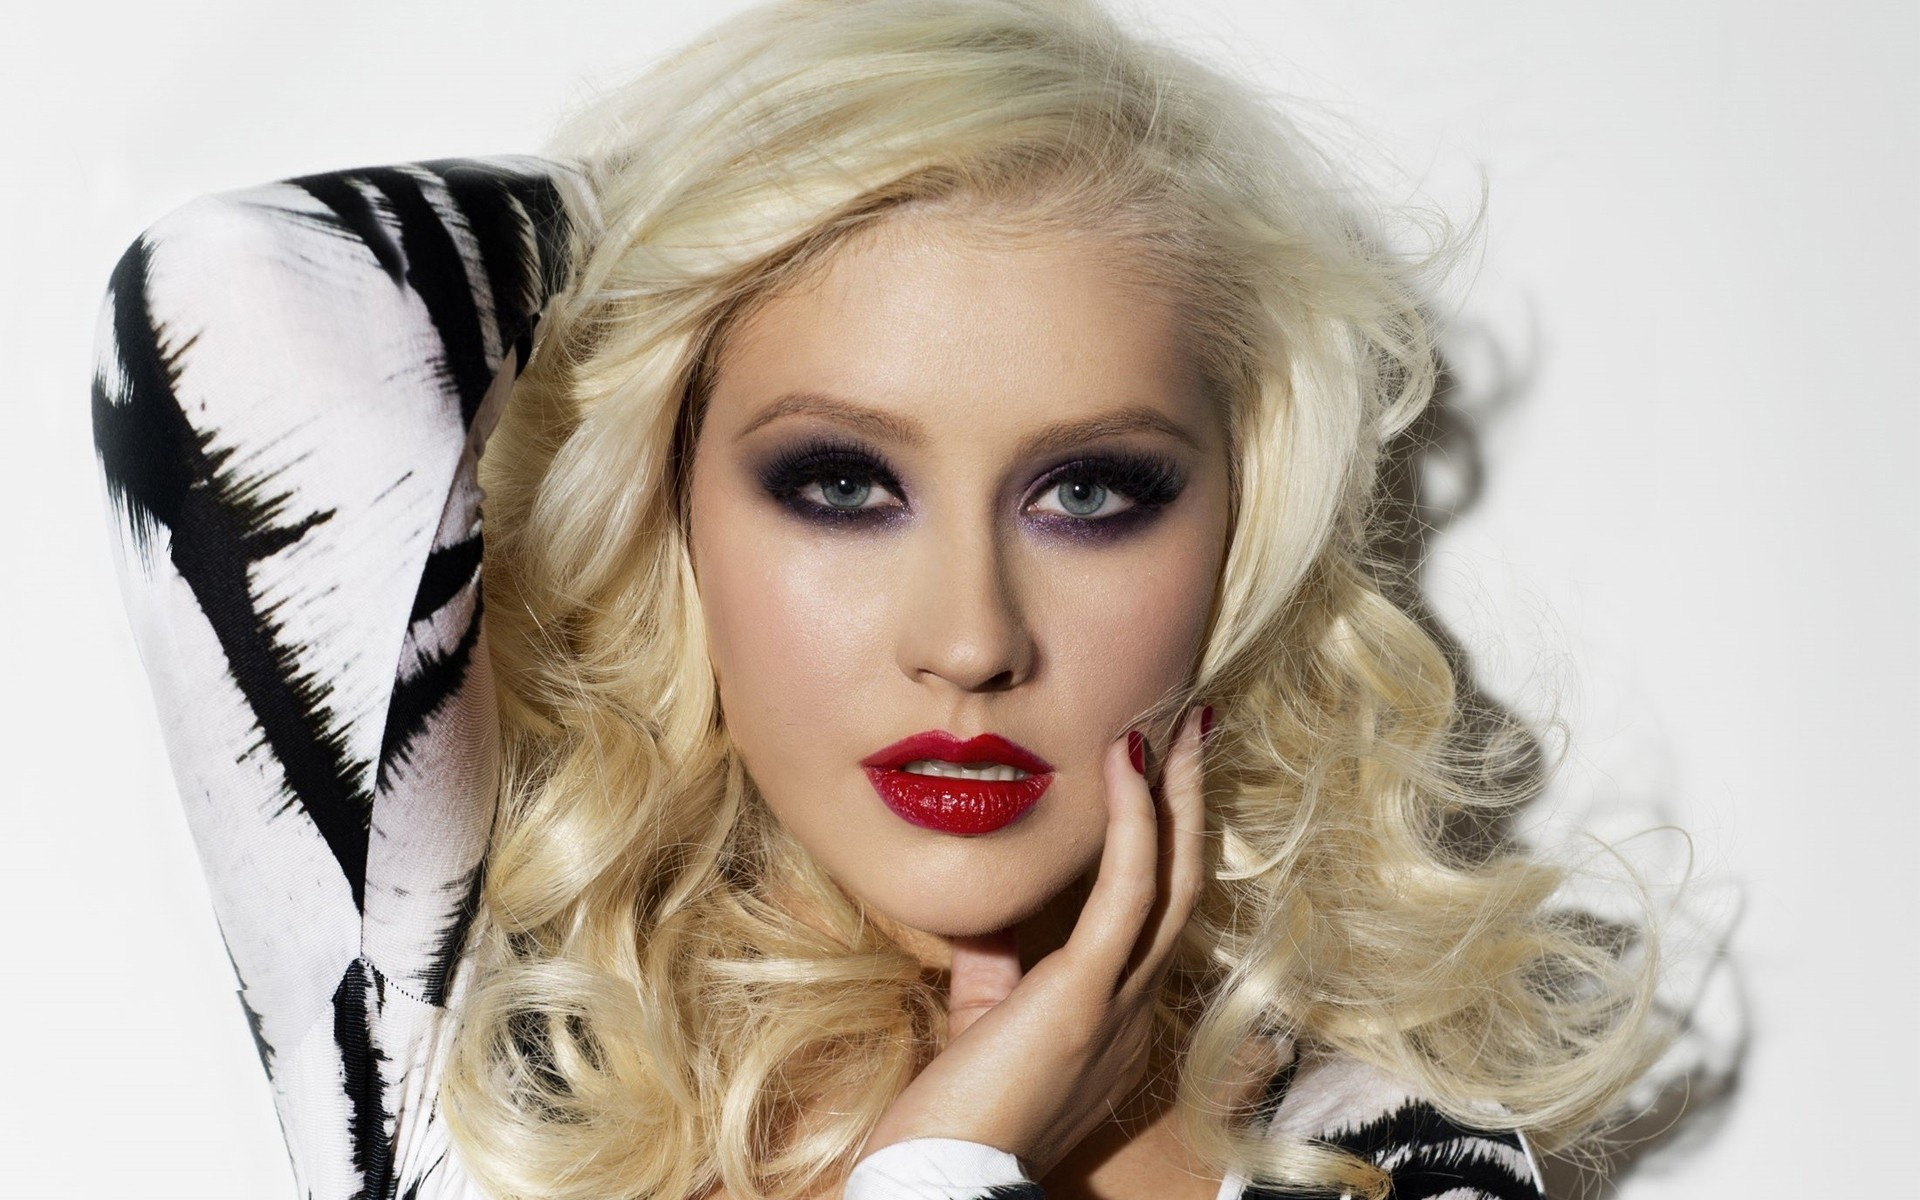 Christina Aguilera Wallpapers 1920x1200 px 643Y1TG   4USkY 1920x1200